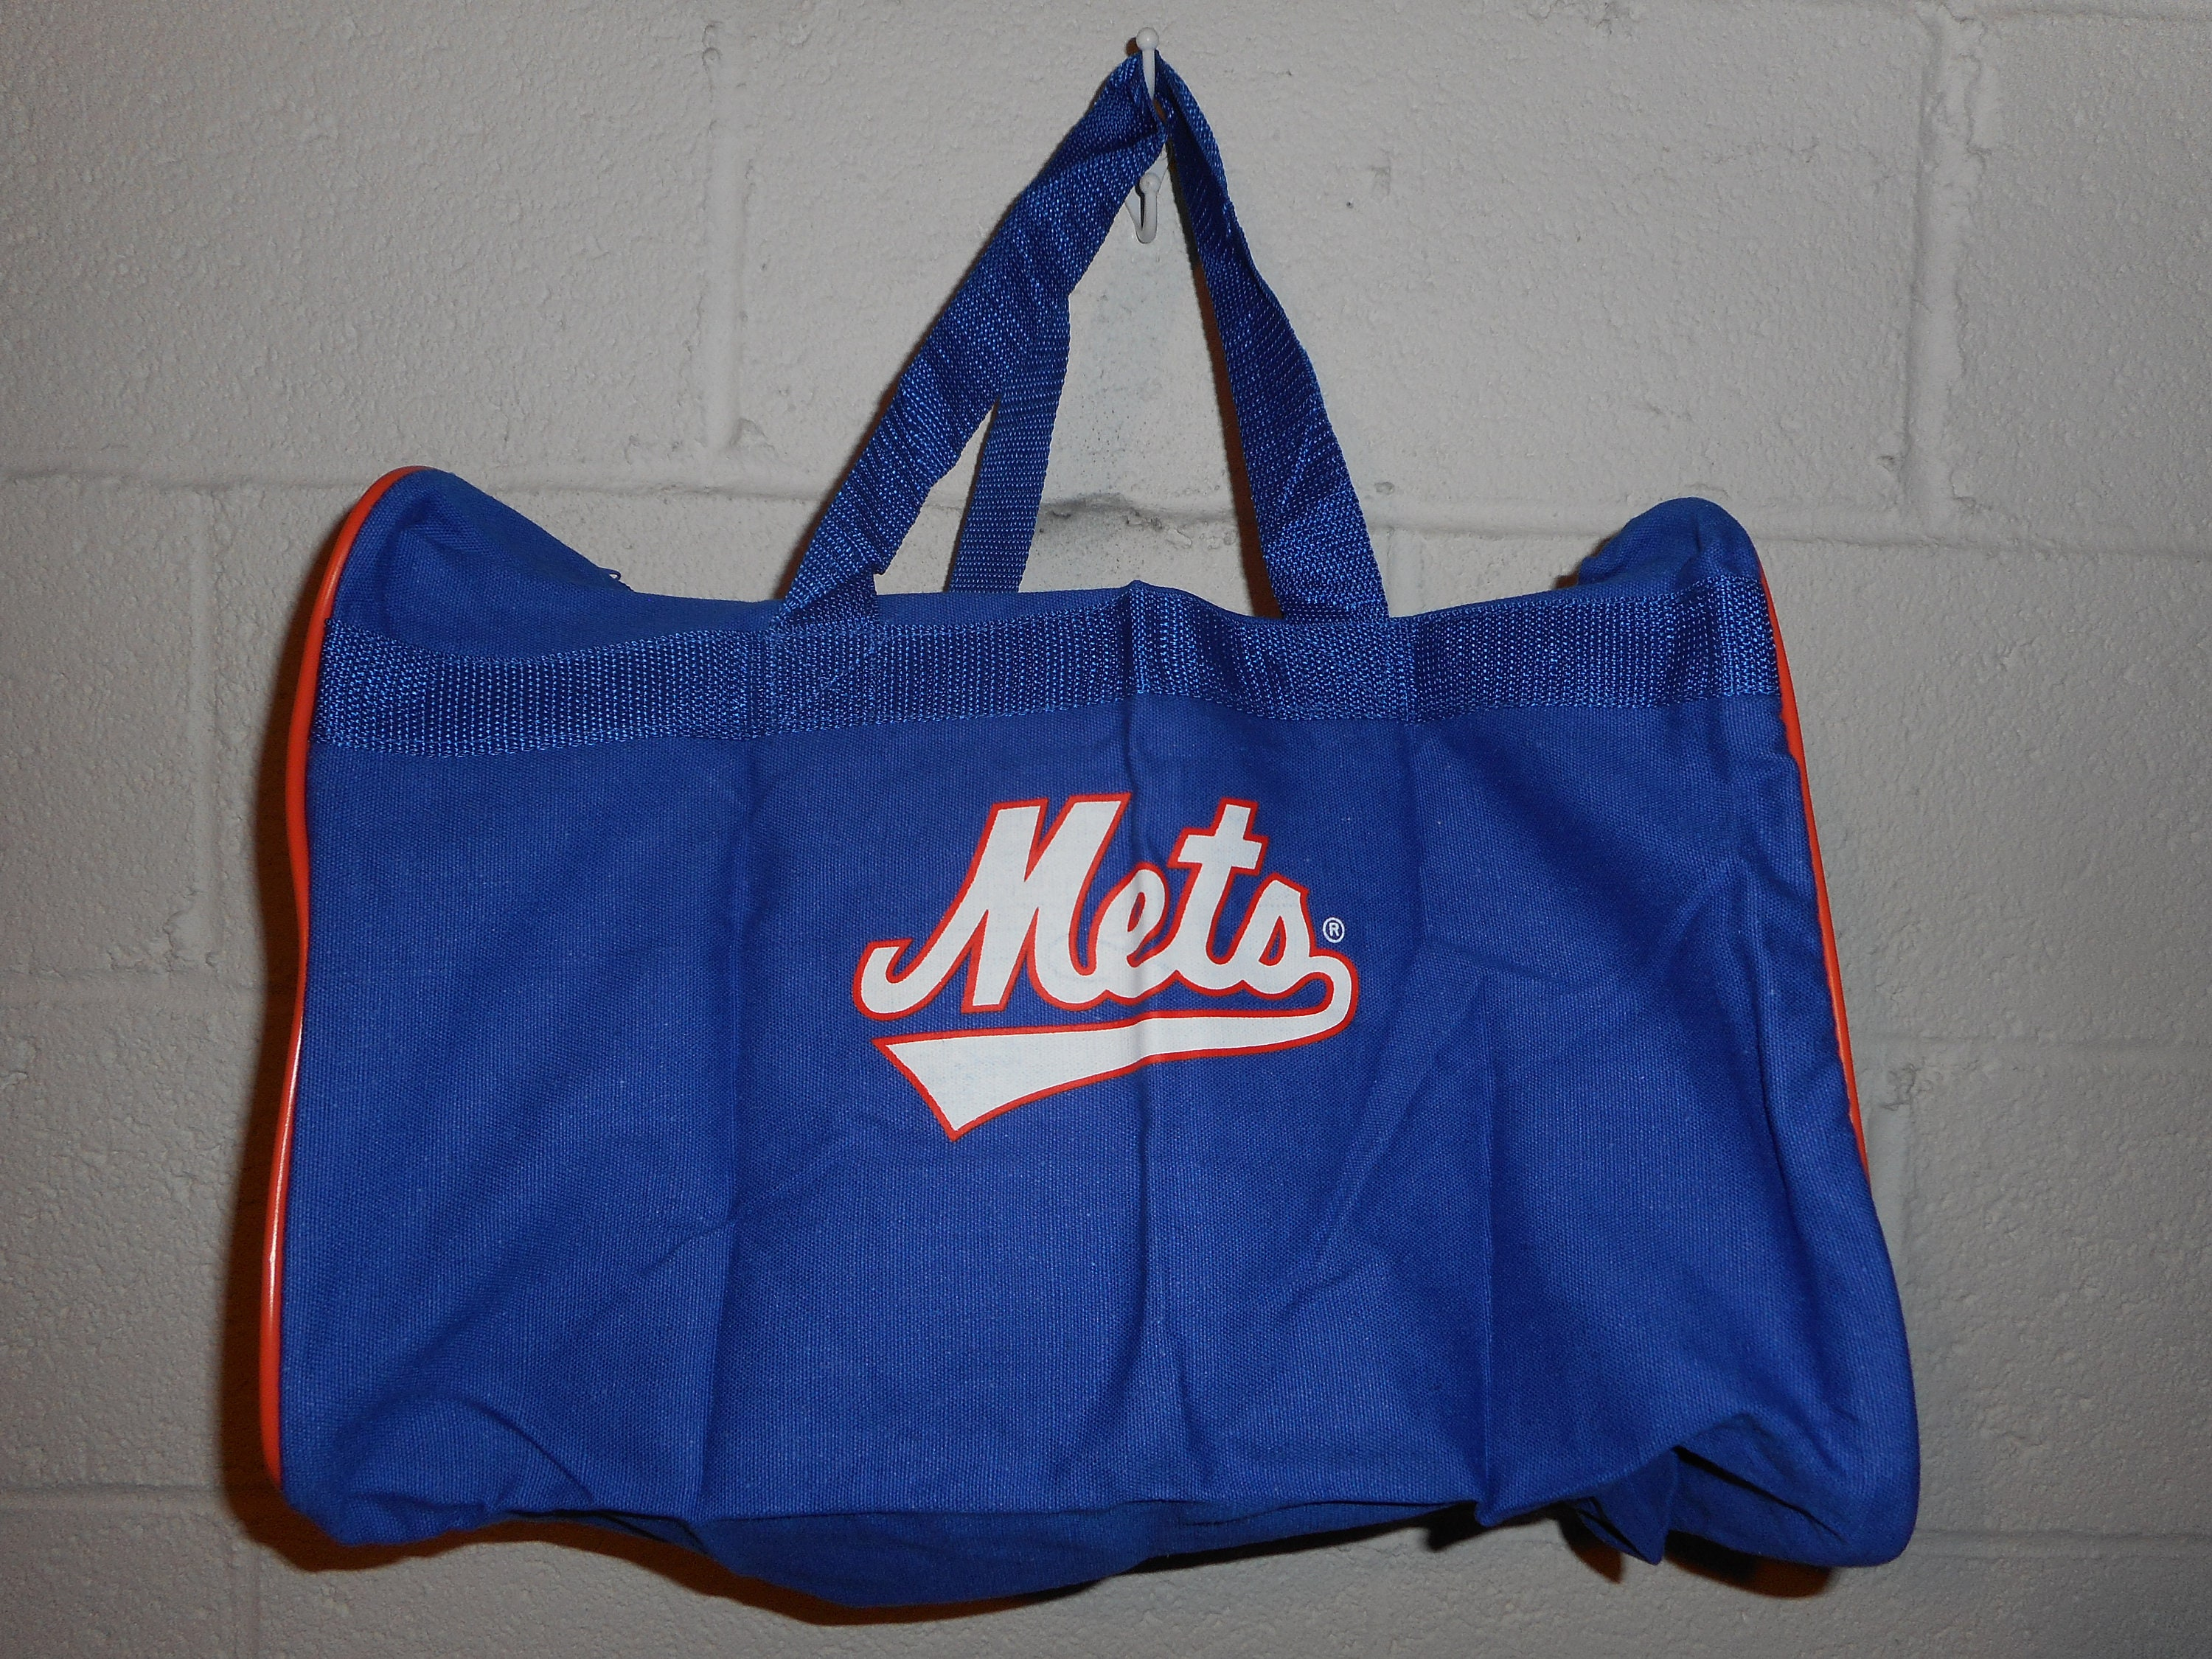 2a2d0410e029 Vintage 90s New York Mets Metlife Snoopy Duffle Bag Gym Bag